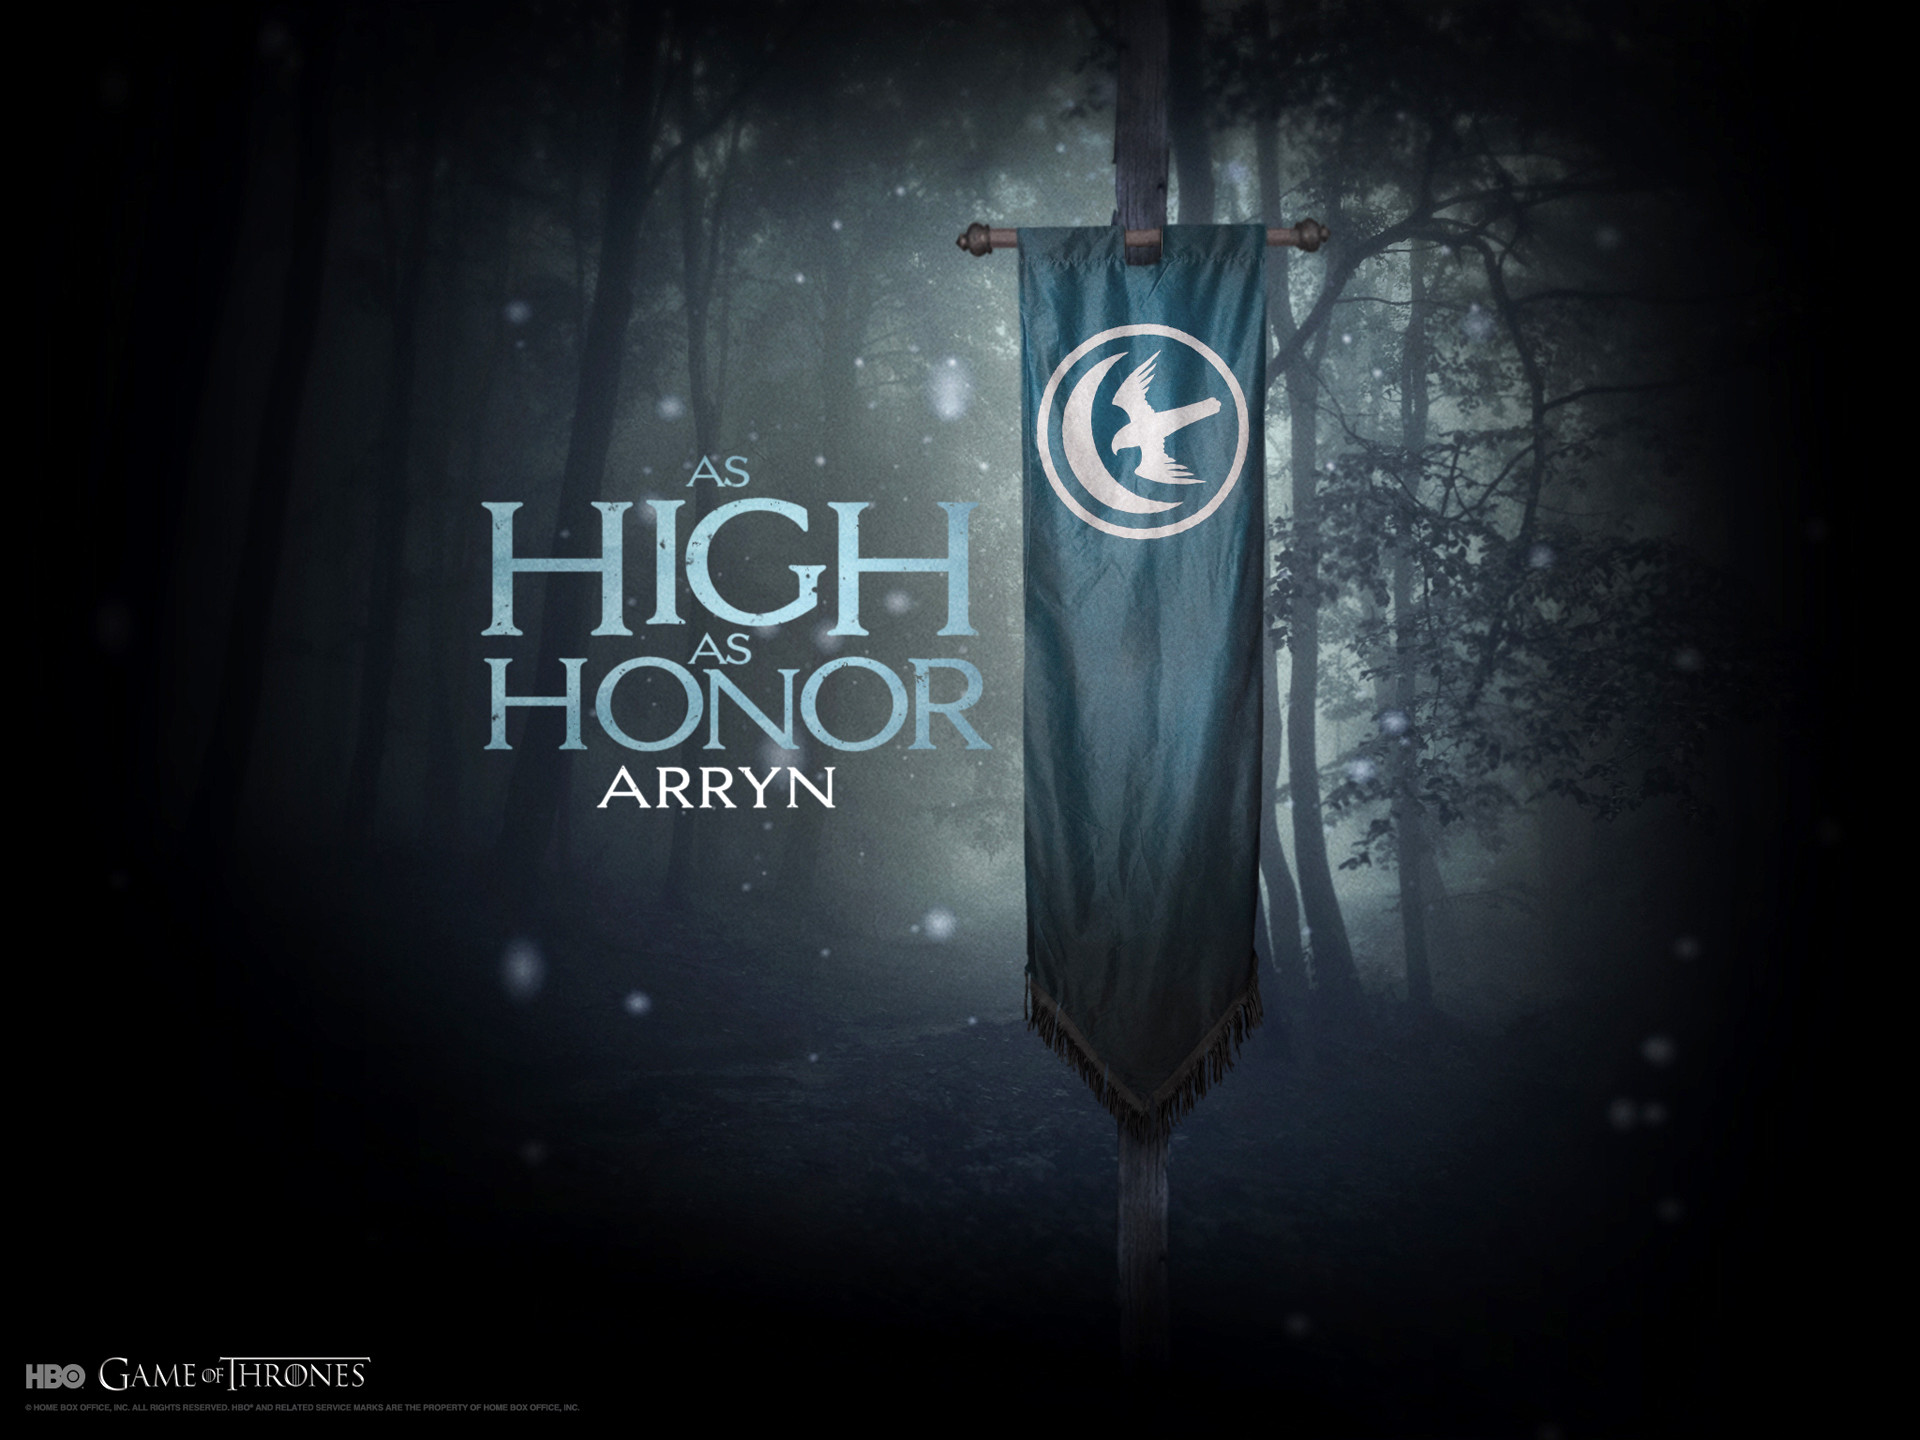 1920x1440 game of thrones images | Game of Thrones House Arryn HD Wallpaper #1996